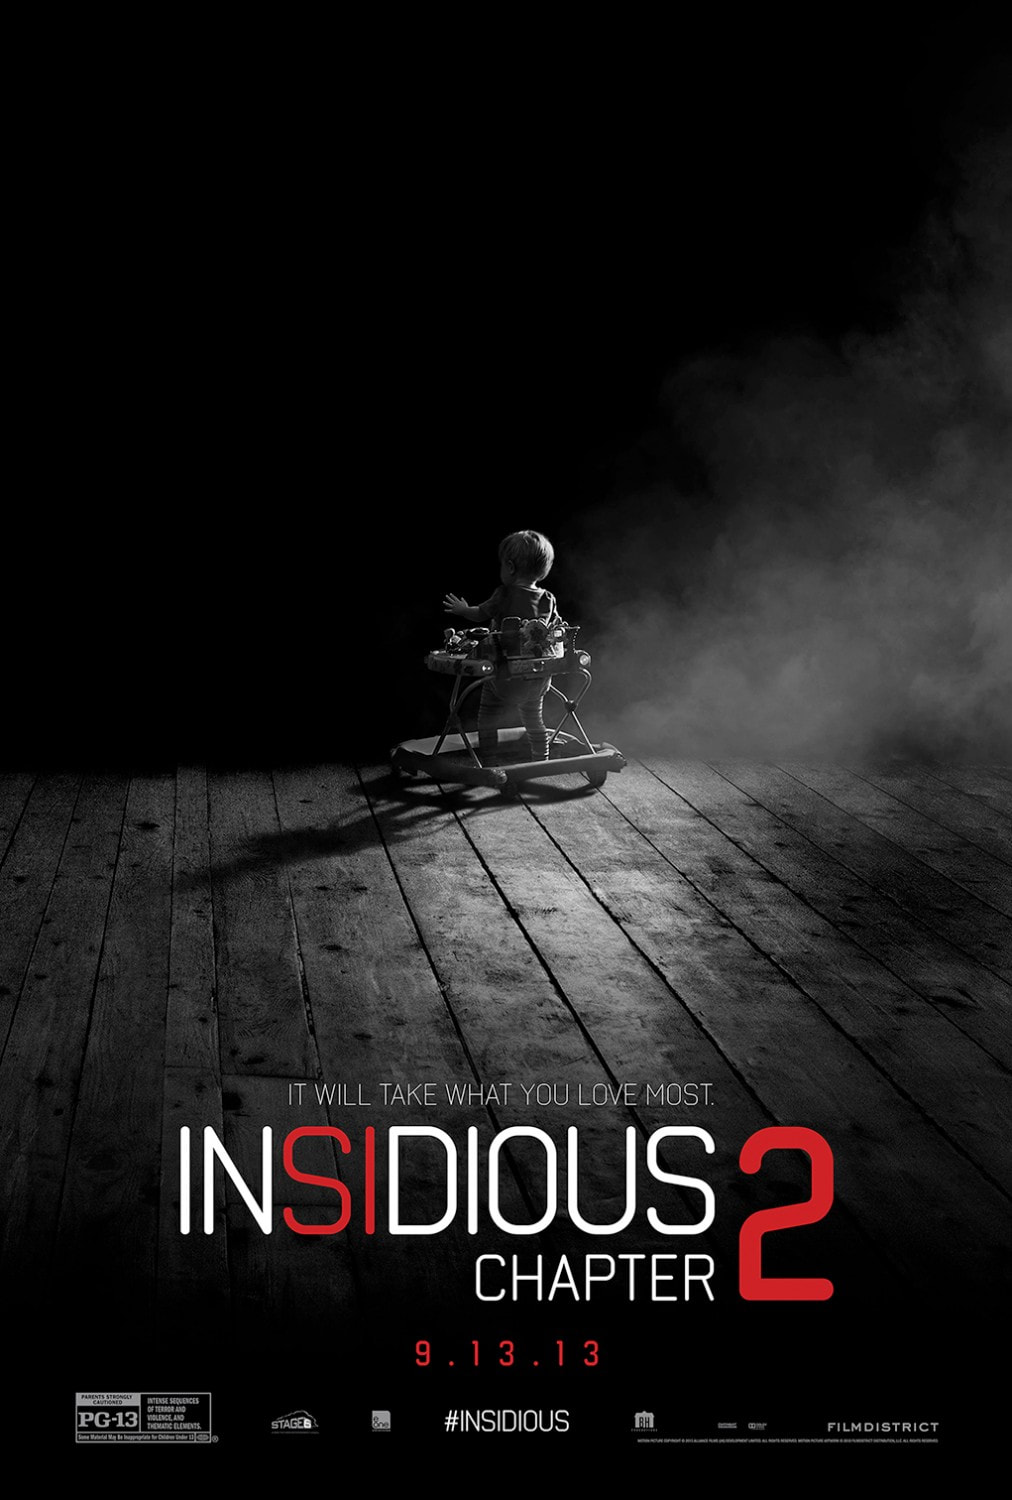 Insidious-Chapter-2-movie-2013-poster